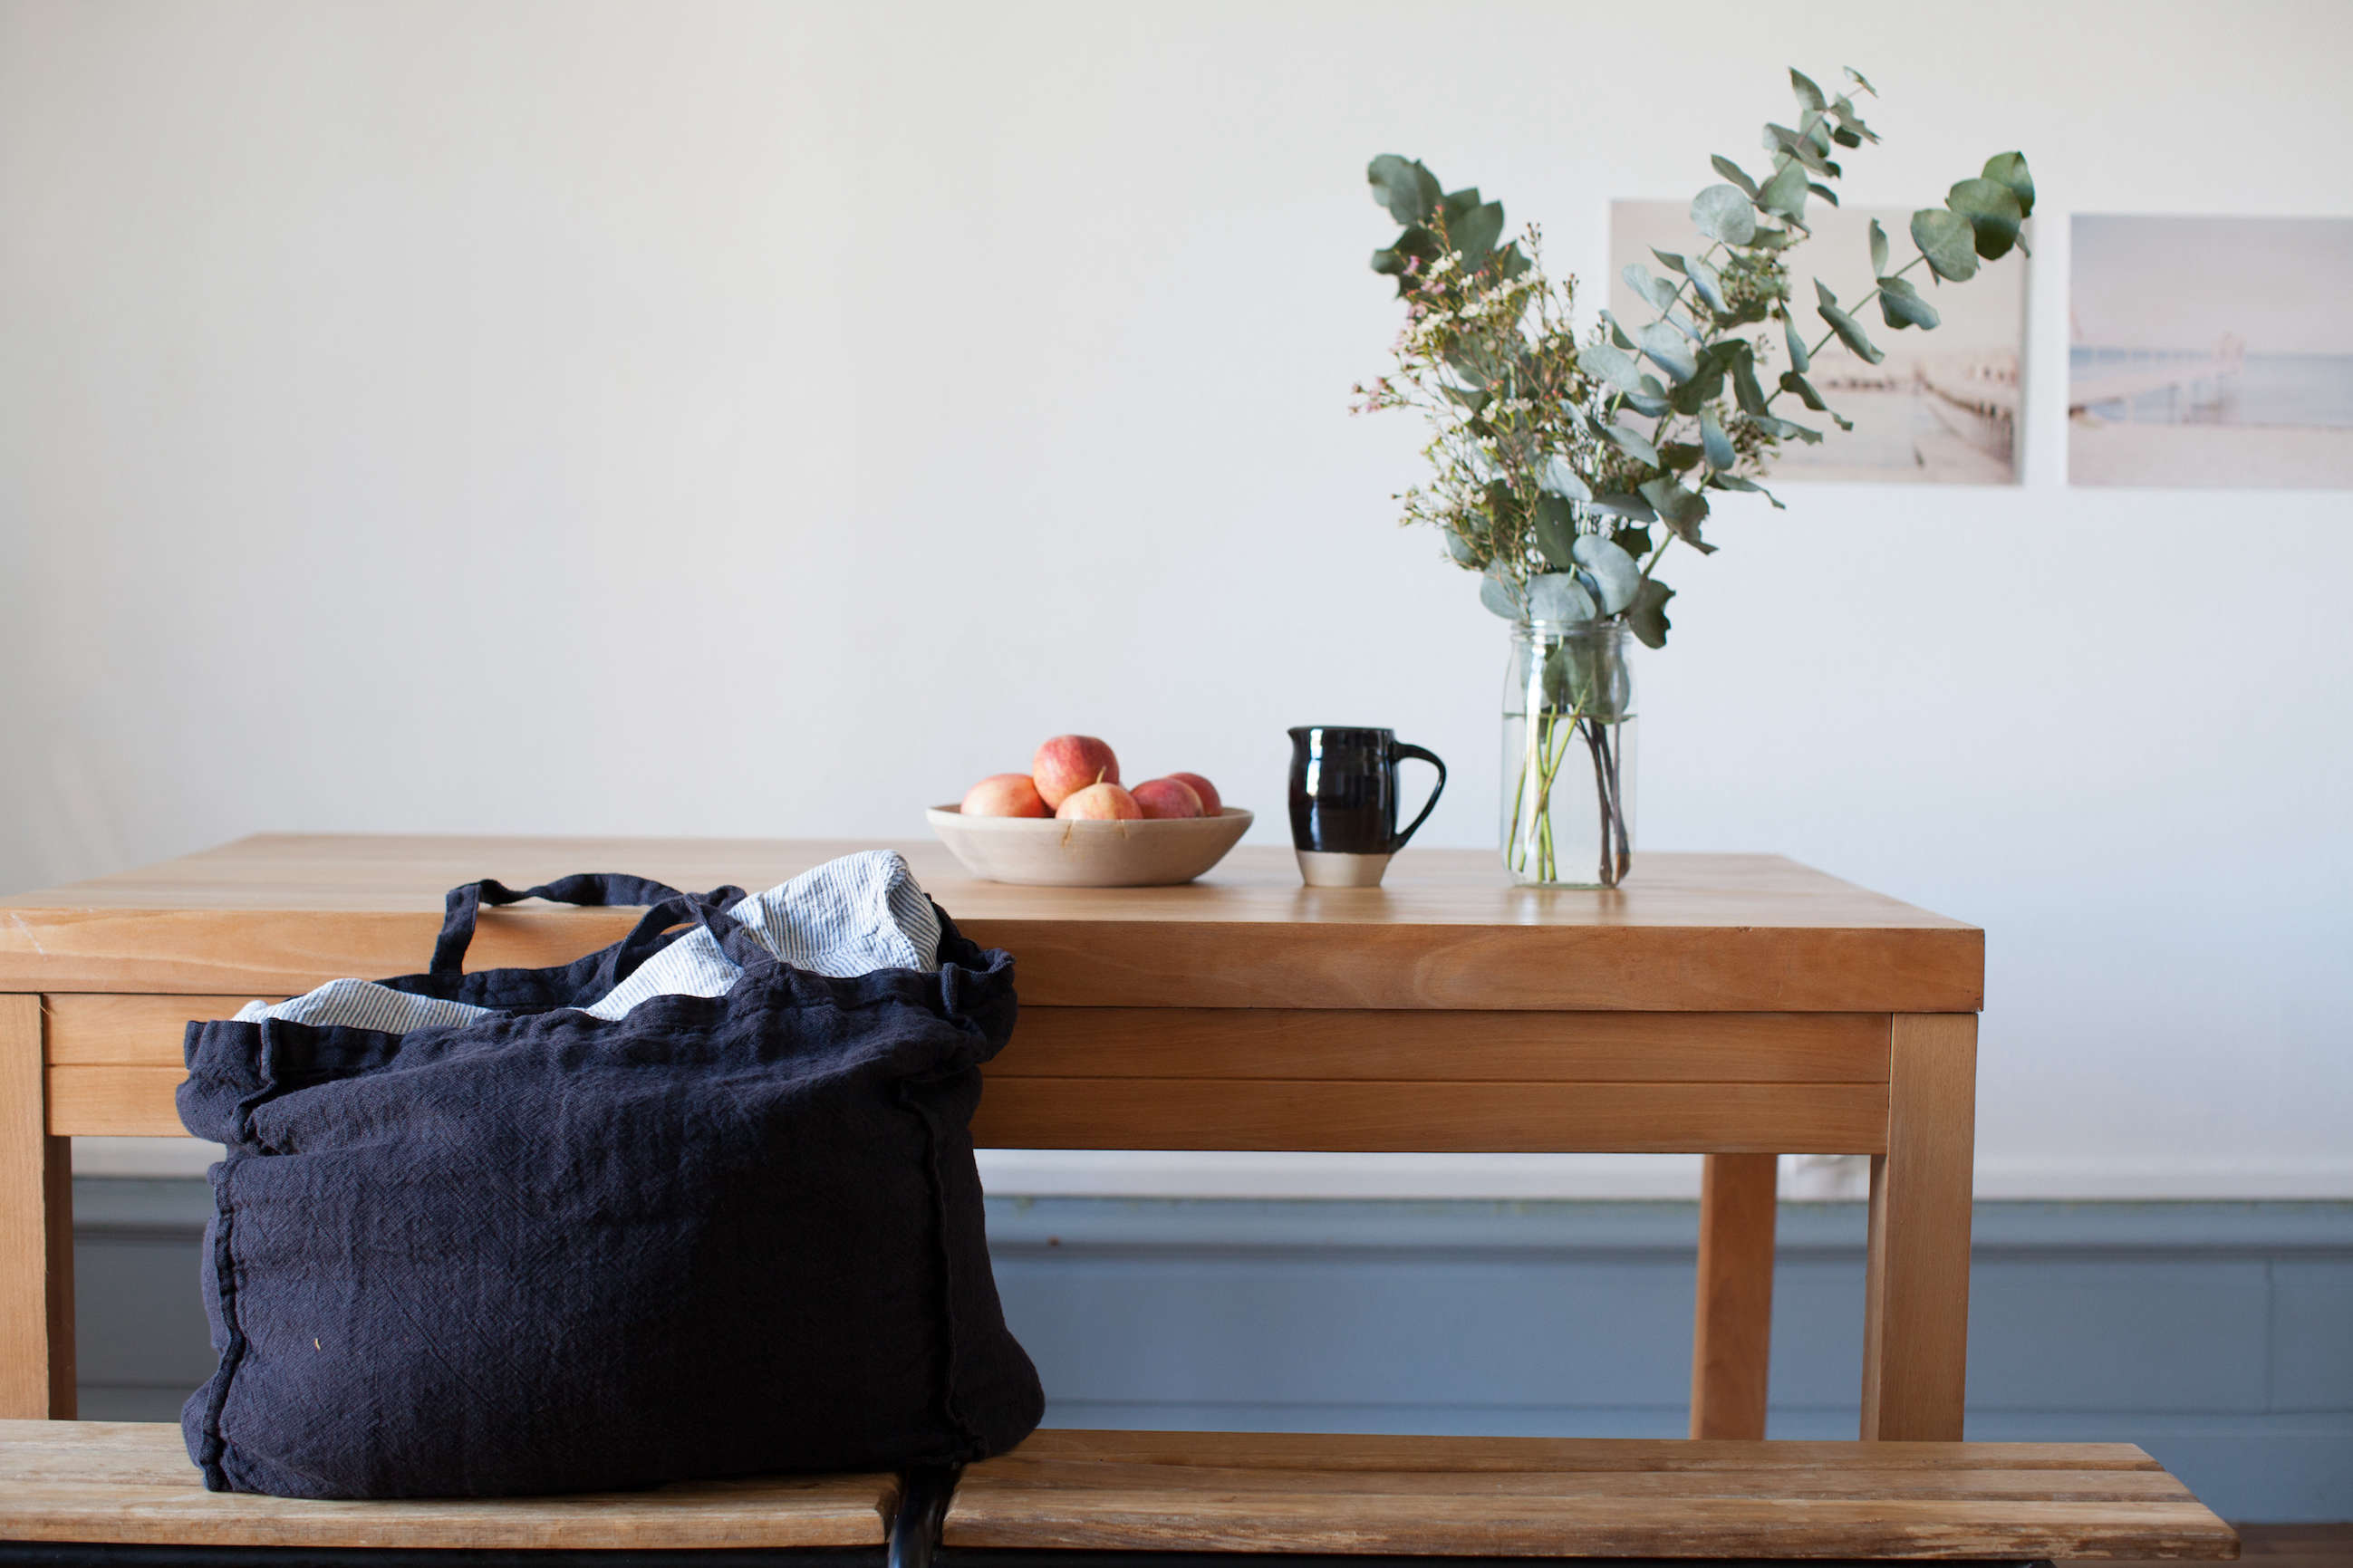 Washed linen tote bag from Le Reperes des Belettes   Remodelista